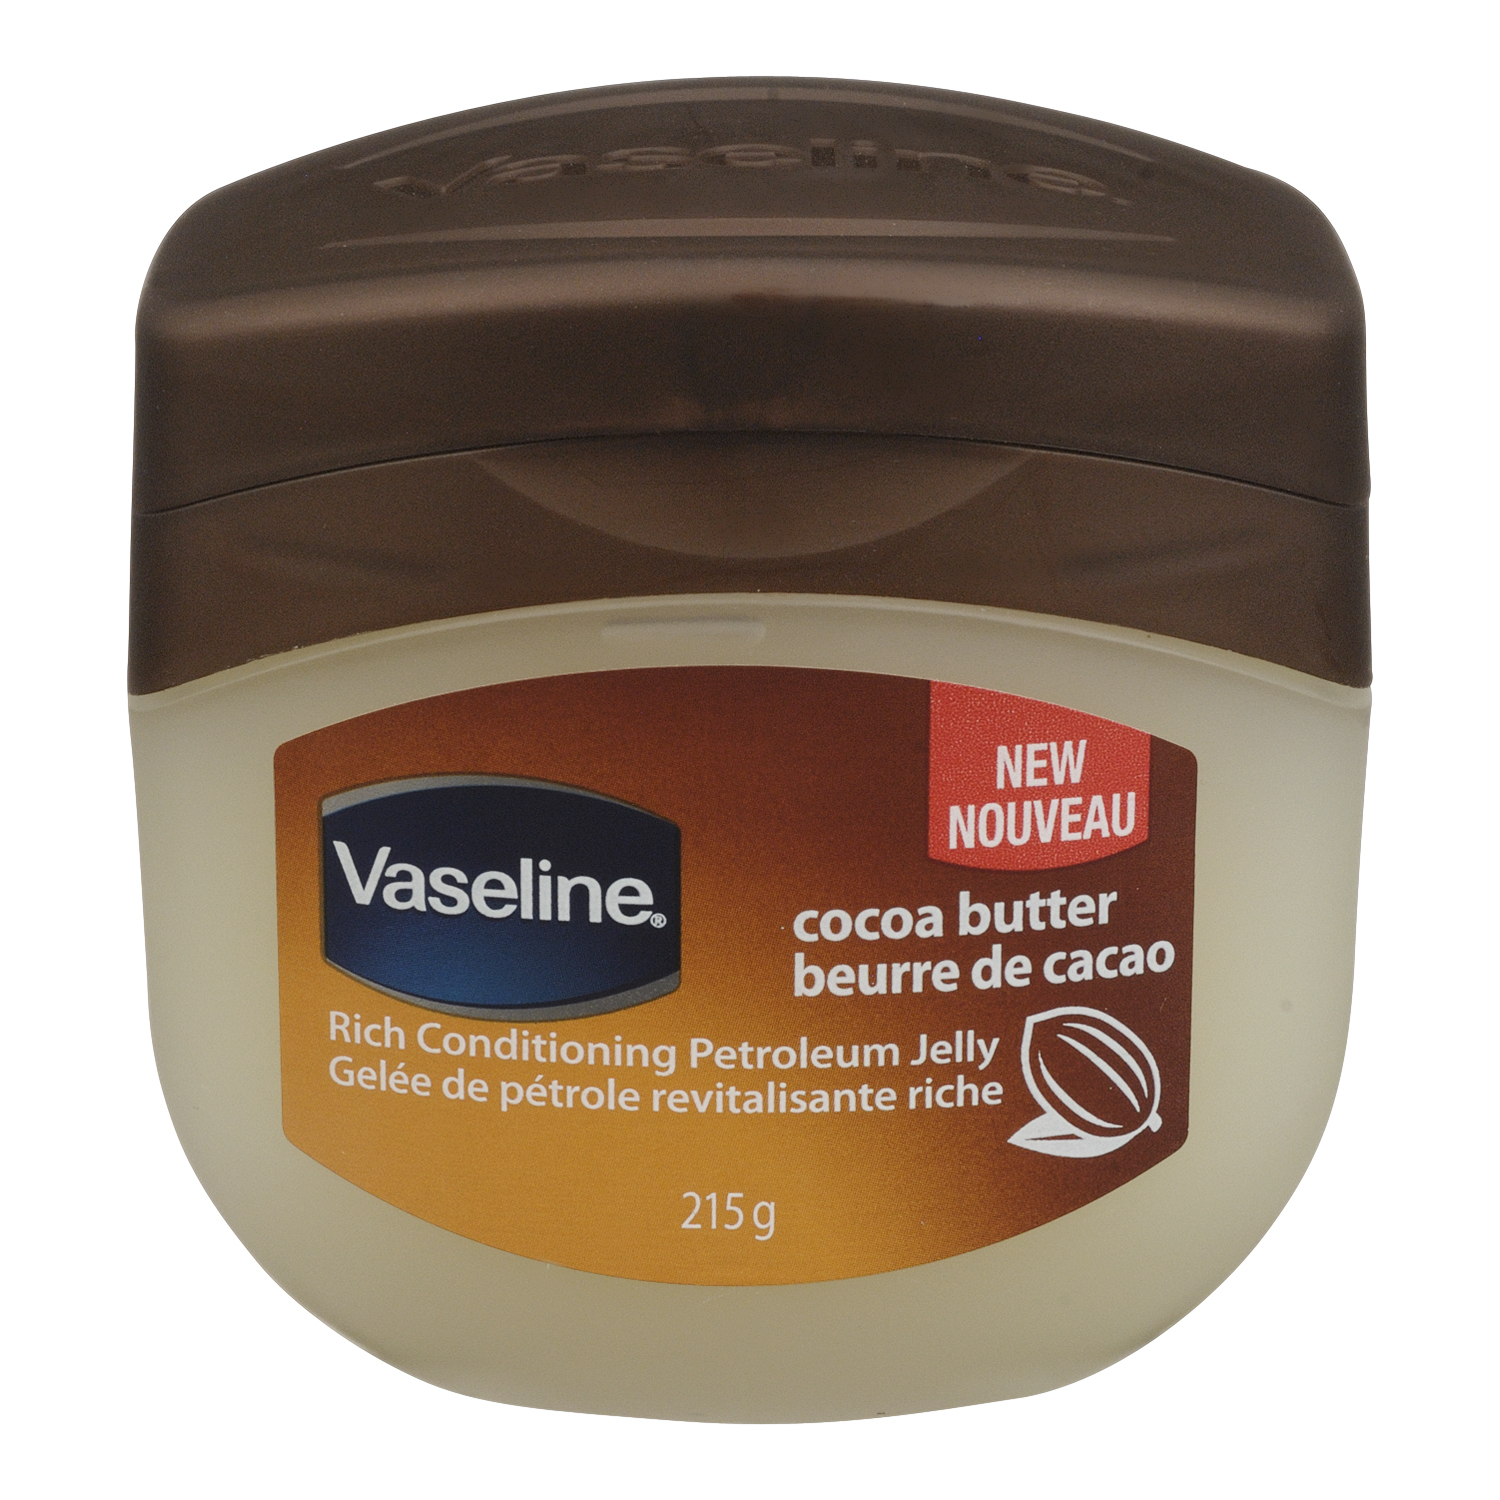 Vaseline Rich Conditioning Petroleum Jelly, Cocoa Butter, 215 g